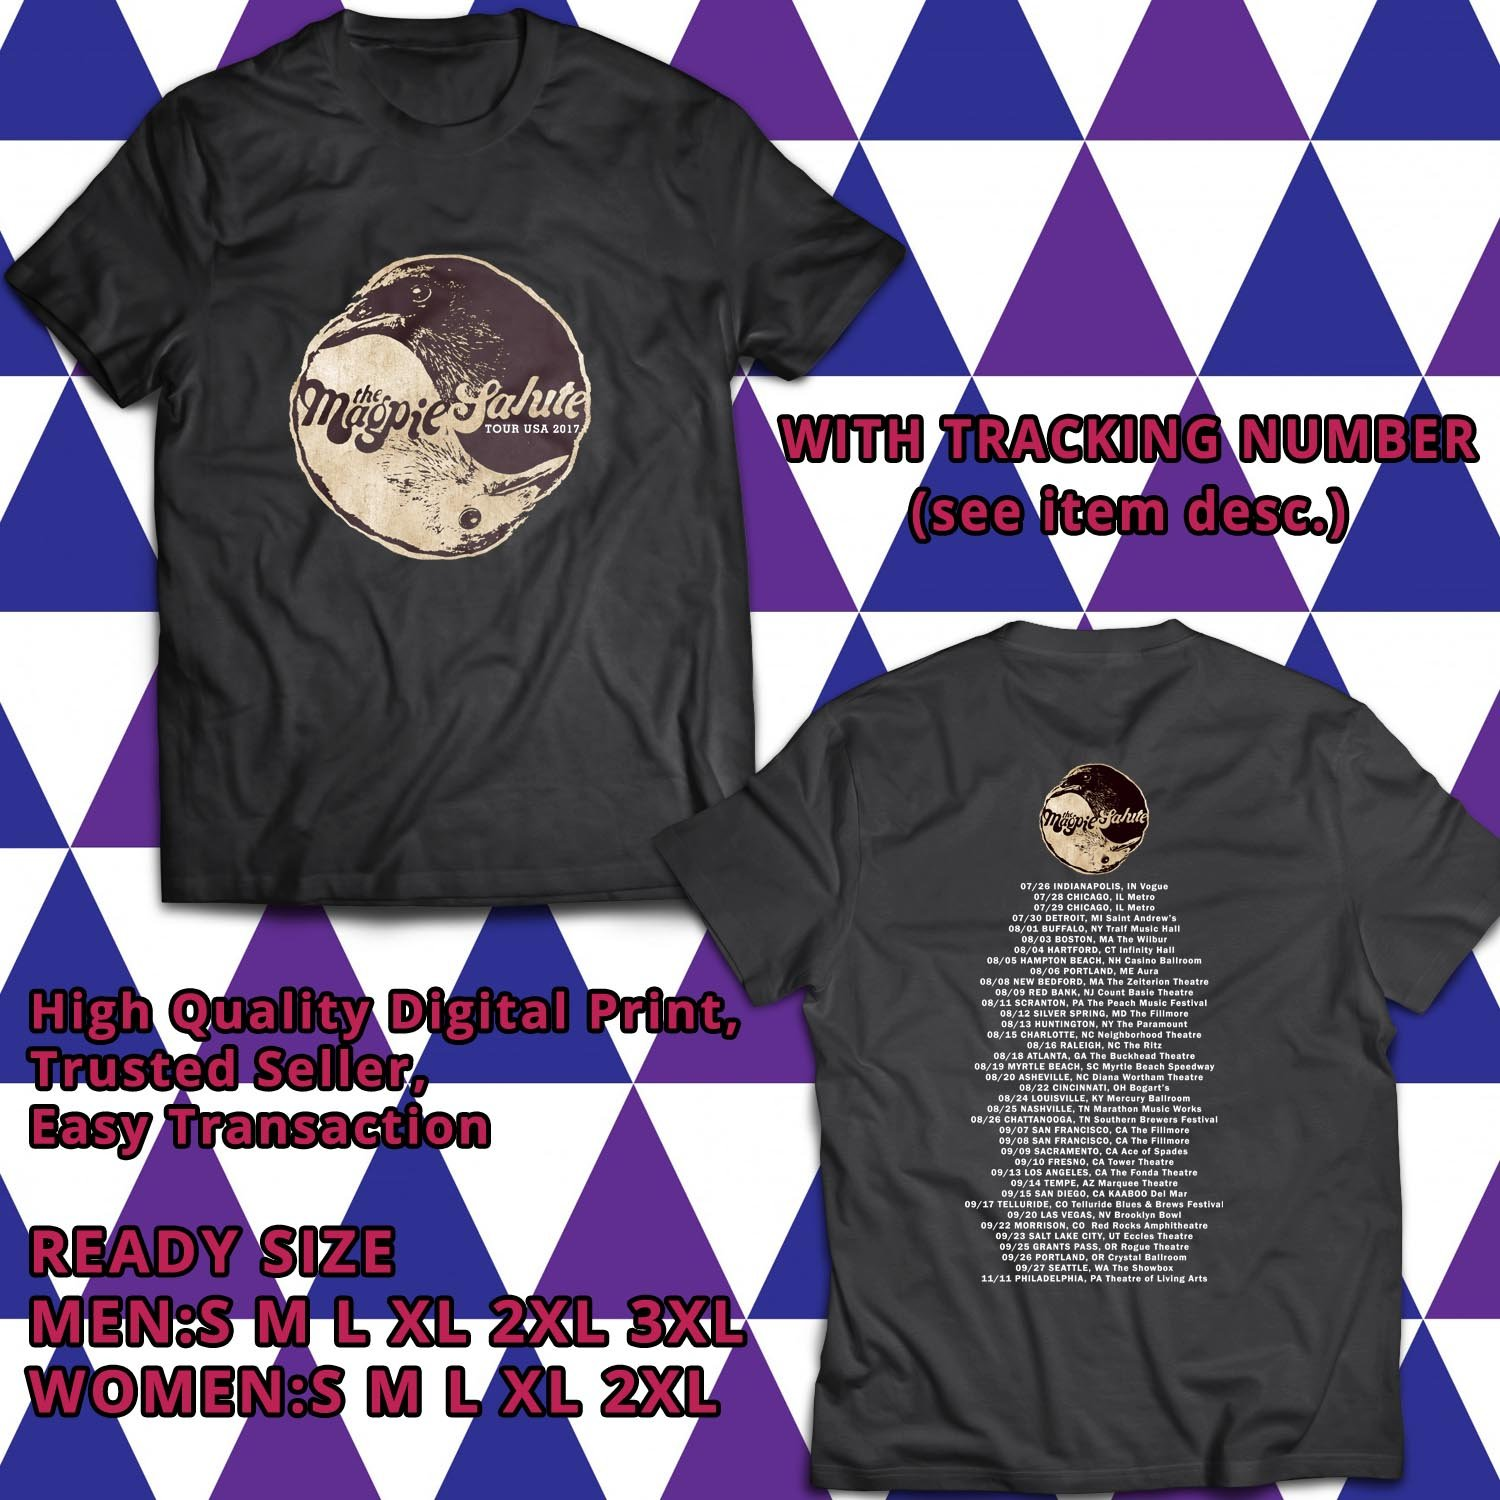 HITS THE MAGPIE SALUTE UNITED STATES TOUR 2017 BLACK TEE'S 2SIDE MAN WOMEN ASTR 221